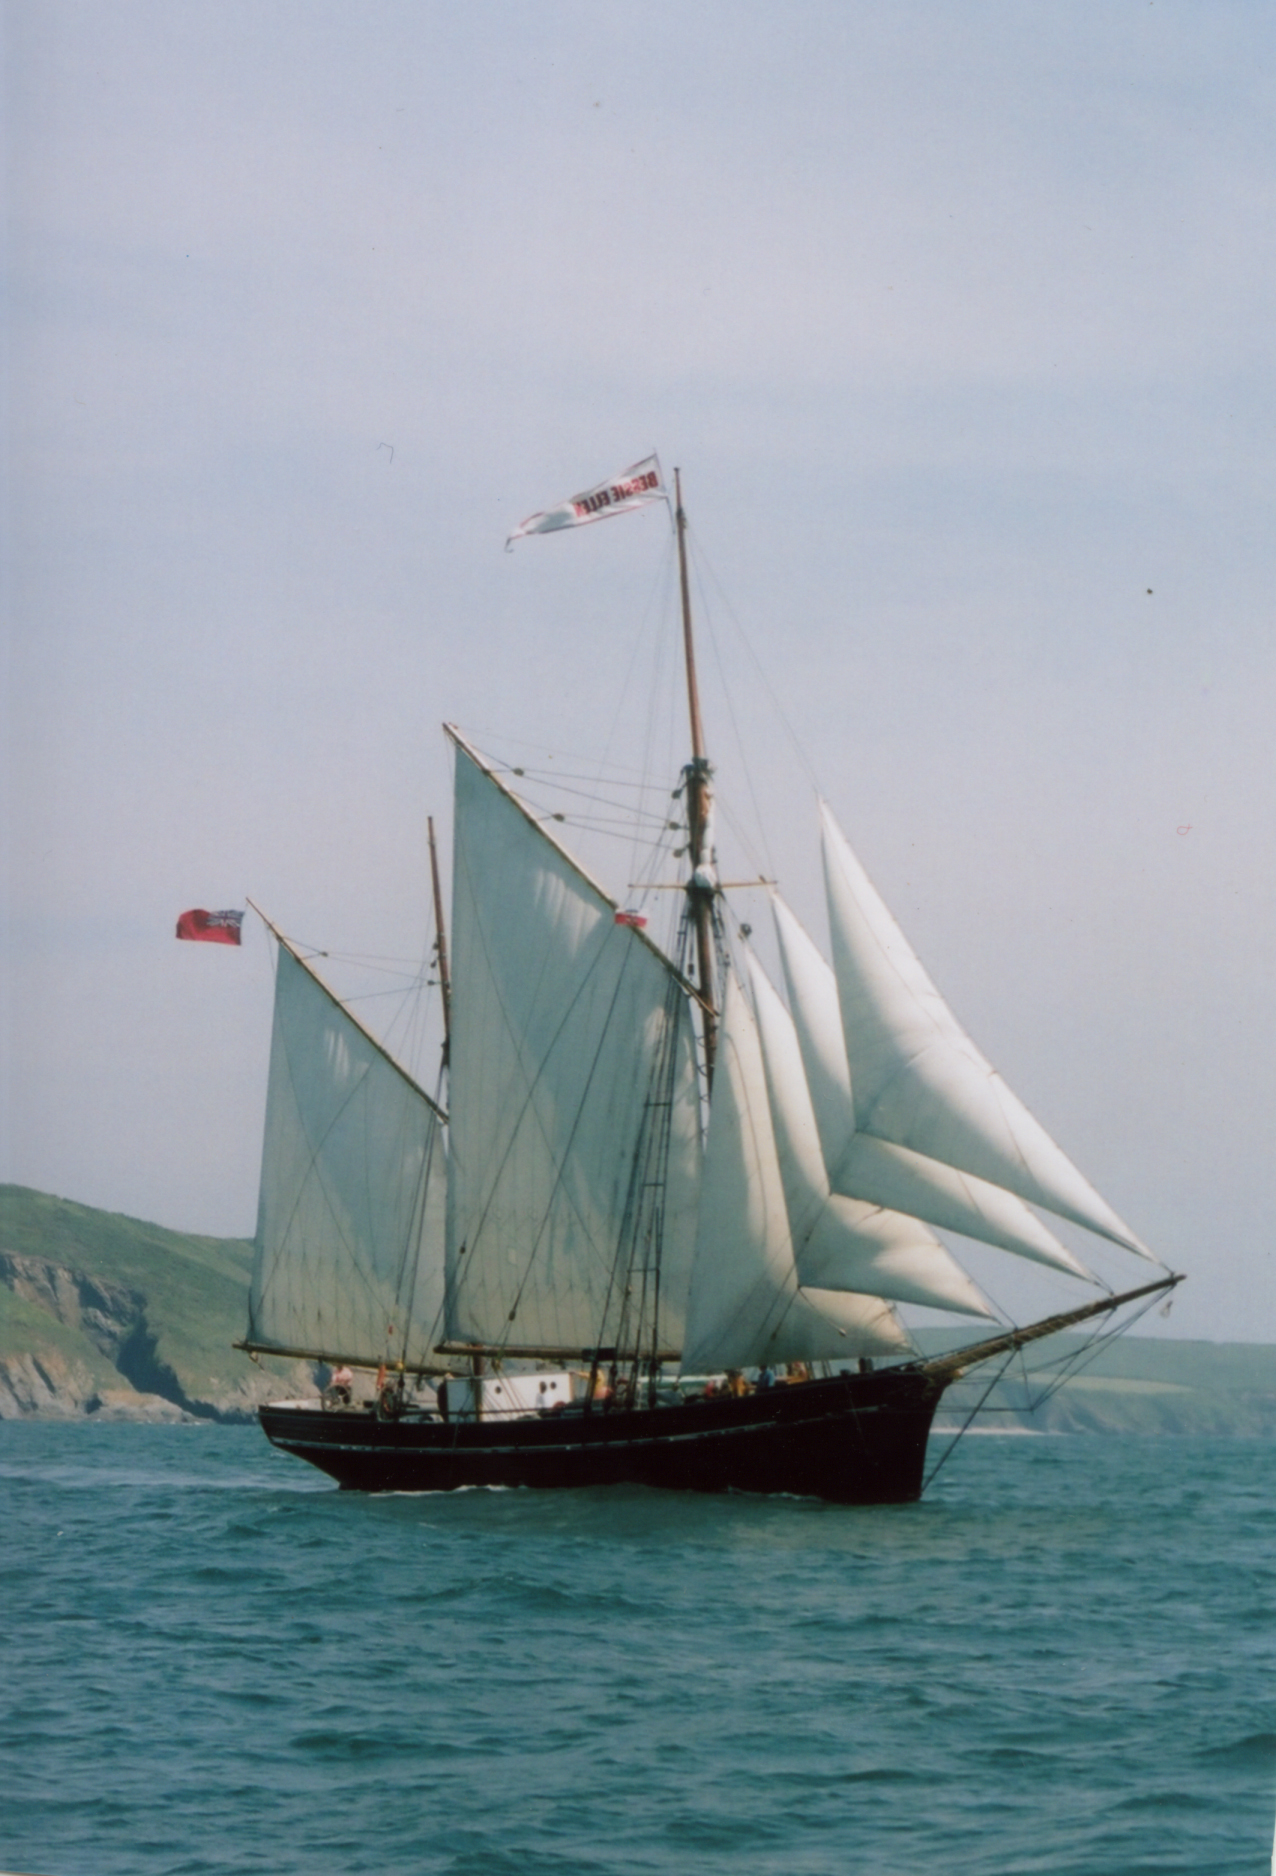 The tall ship, Bessie Ellen, will be joining the Beer Fleet celebrations to mark the start of the Truro and Penwith College Fal River Festival